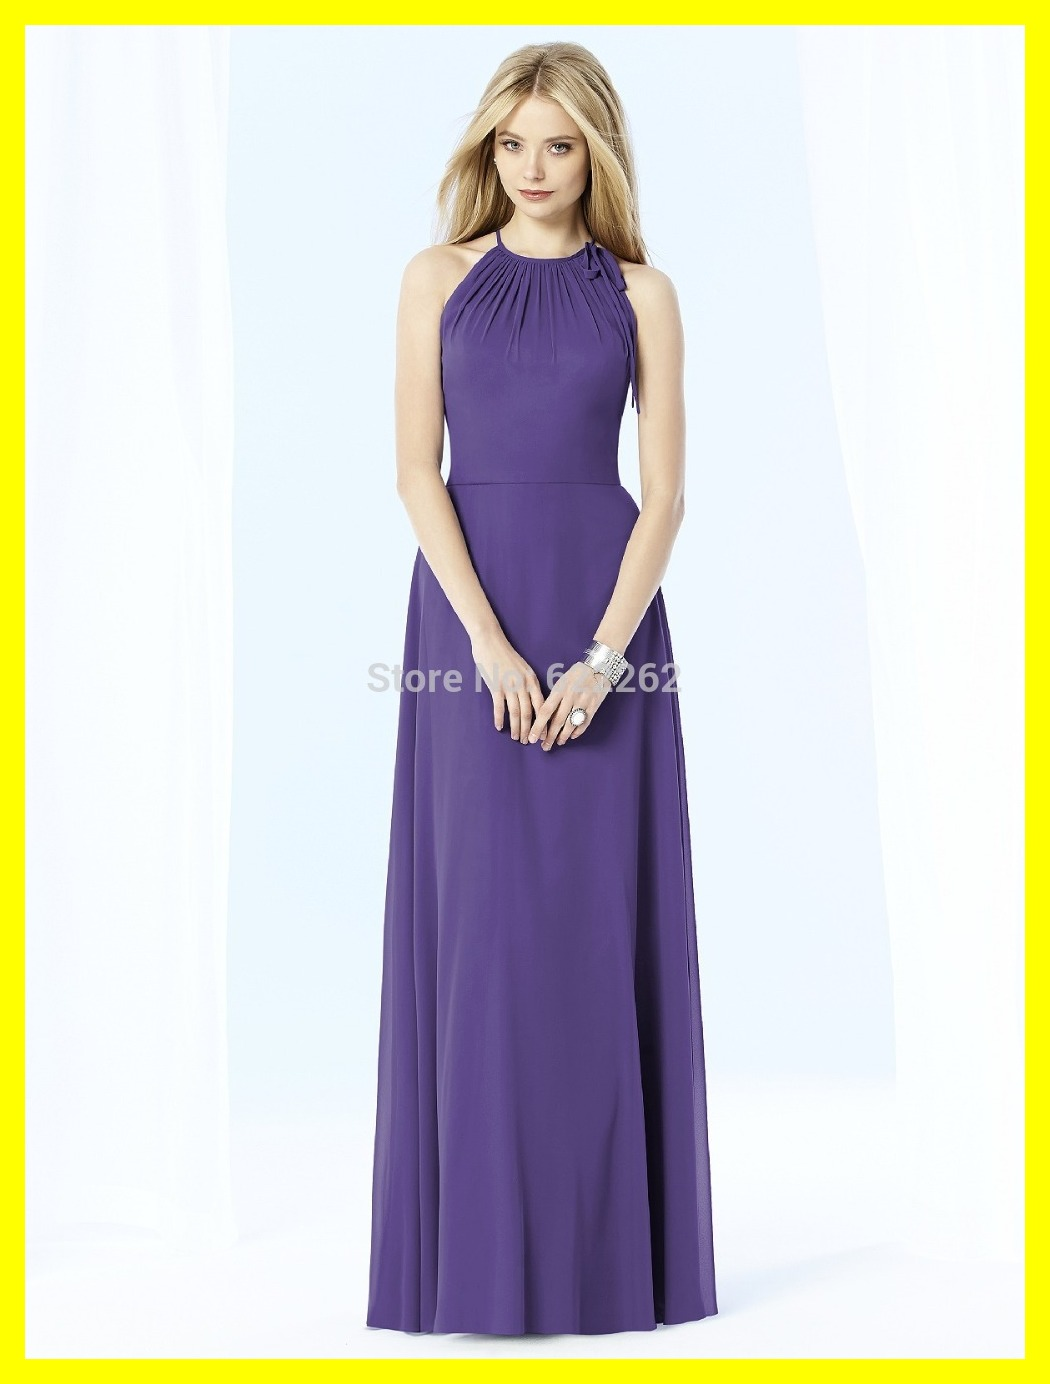 Hire bridesmaid dresses uk choice image braidsmaid dress hiring bridesmaid dresses image collections braidsmaid dress hiring bridesmaid dresses gallery braidsmaid dress cocktail hiring bridesmaid ombrellifo Images